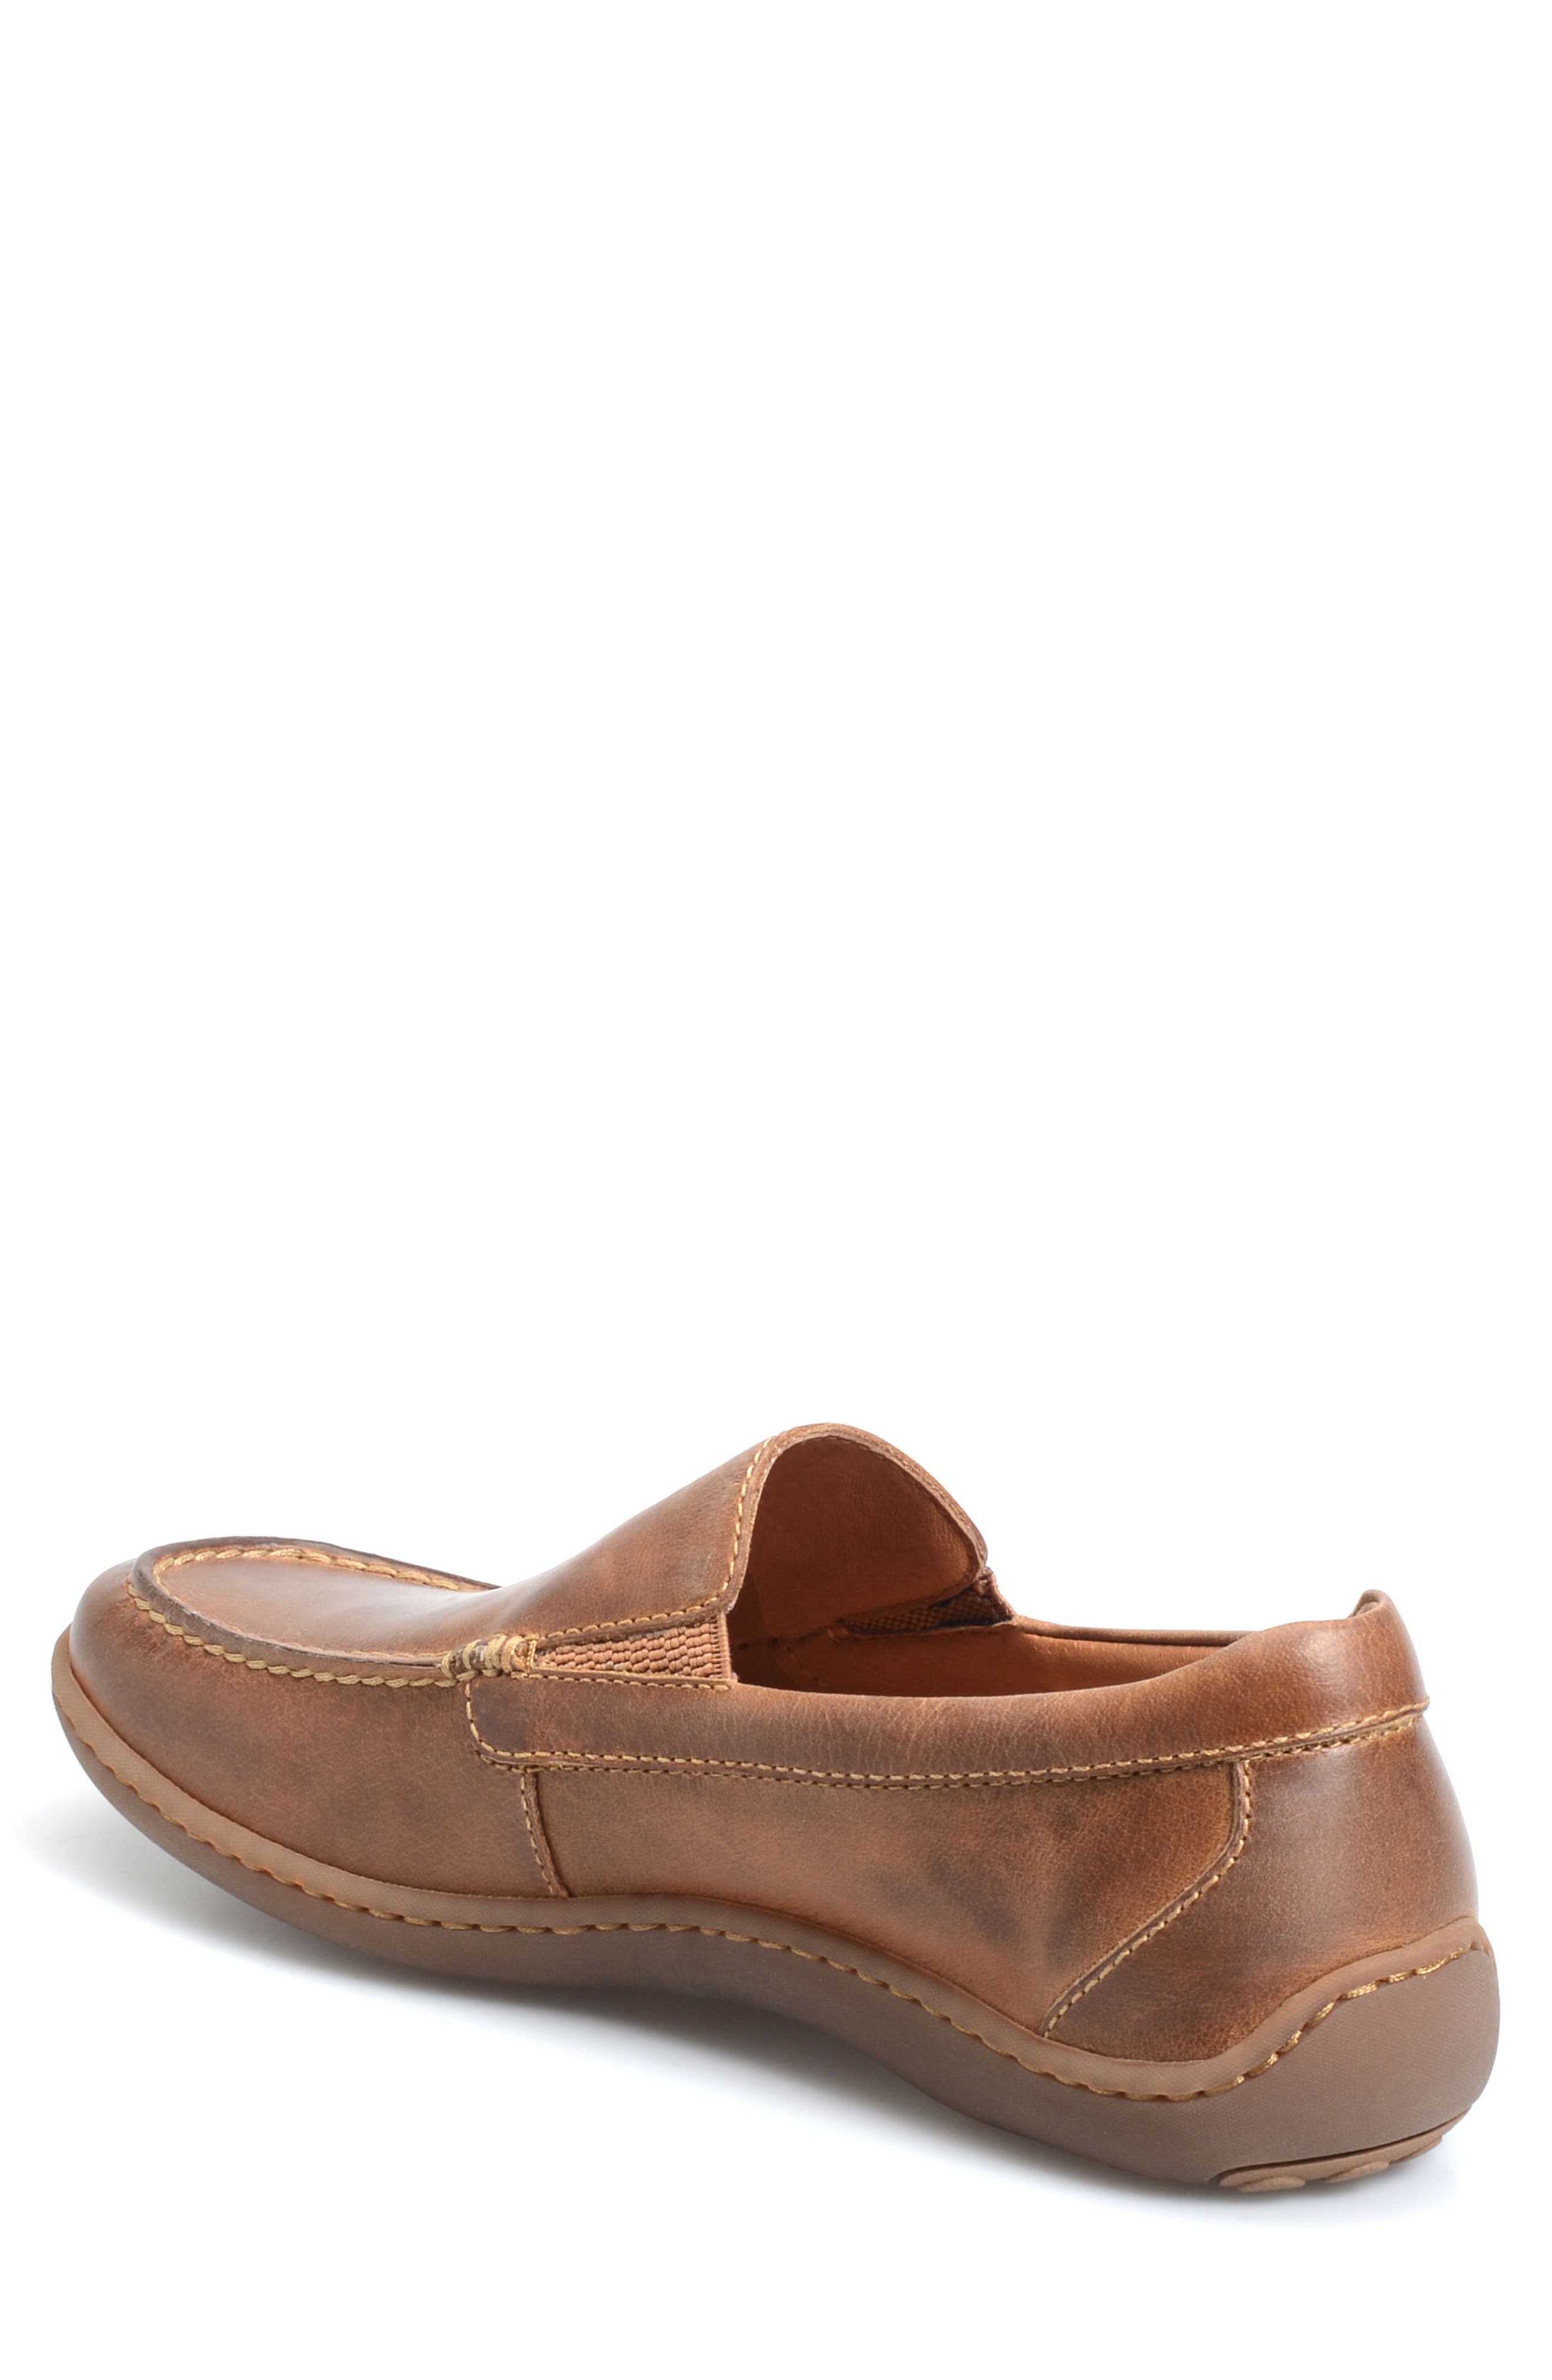 Brompton Loafer,                             Alternate thumbnail 2, color,                             NATURAL